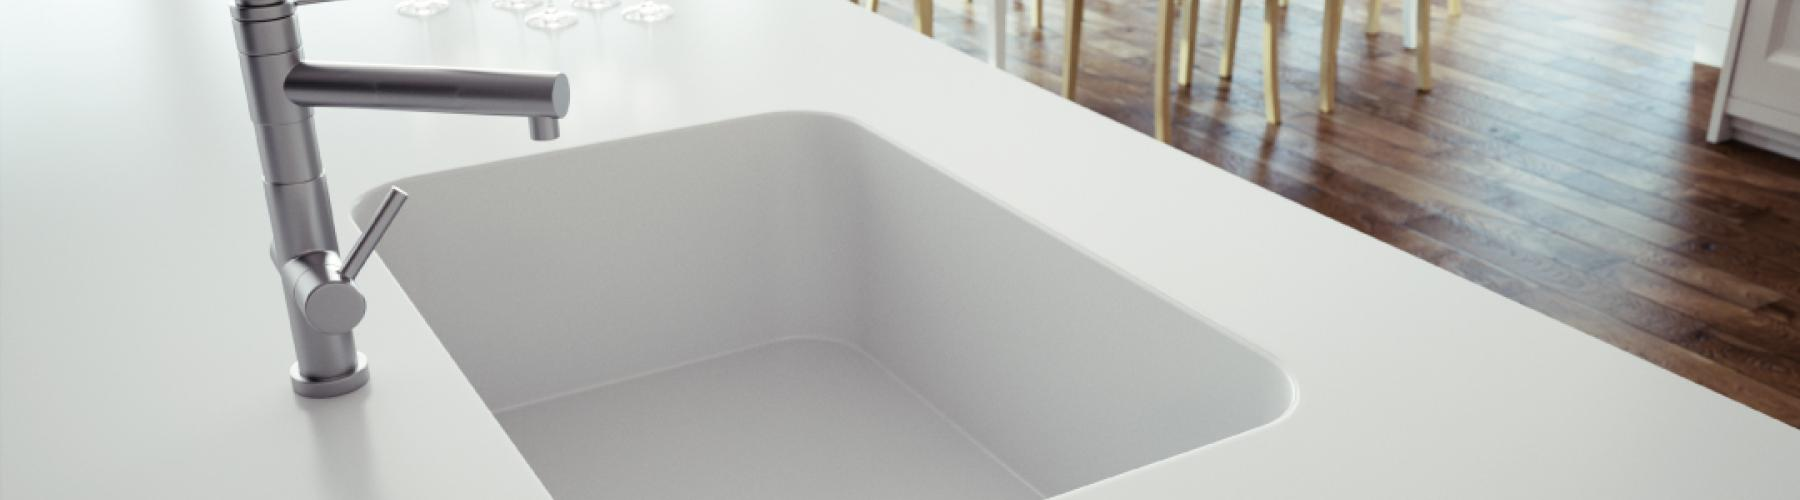 Silestone sinks henderstone for Silestone sink